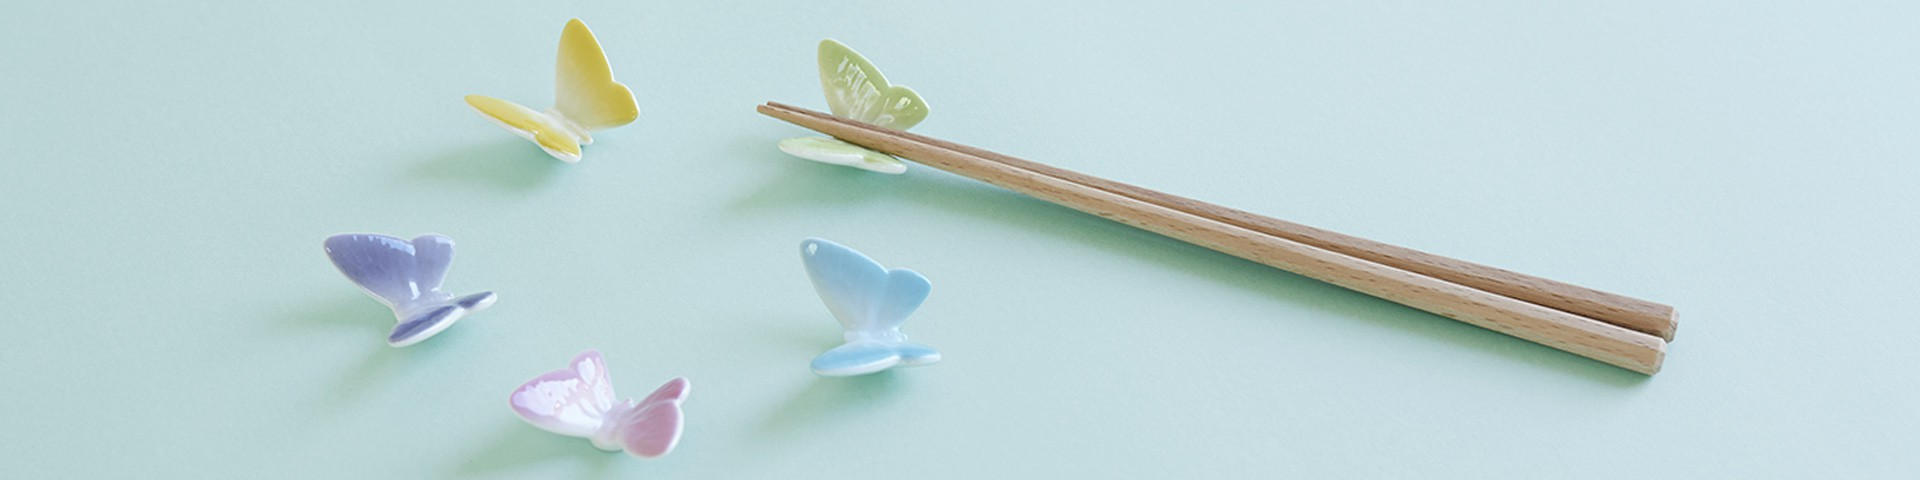 JAPANESE LIFESTYLE  | CHOPSTICKS | CHOPSTICKS RESTS